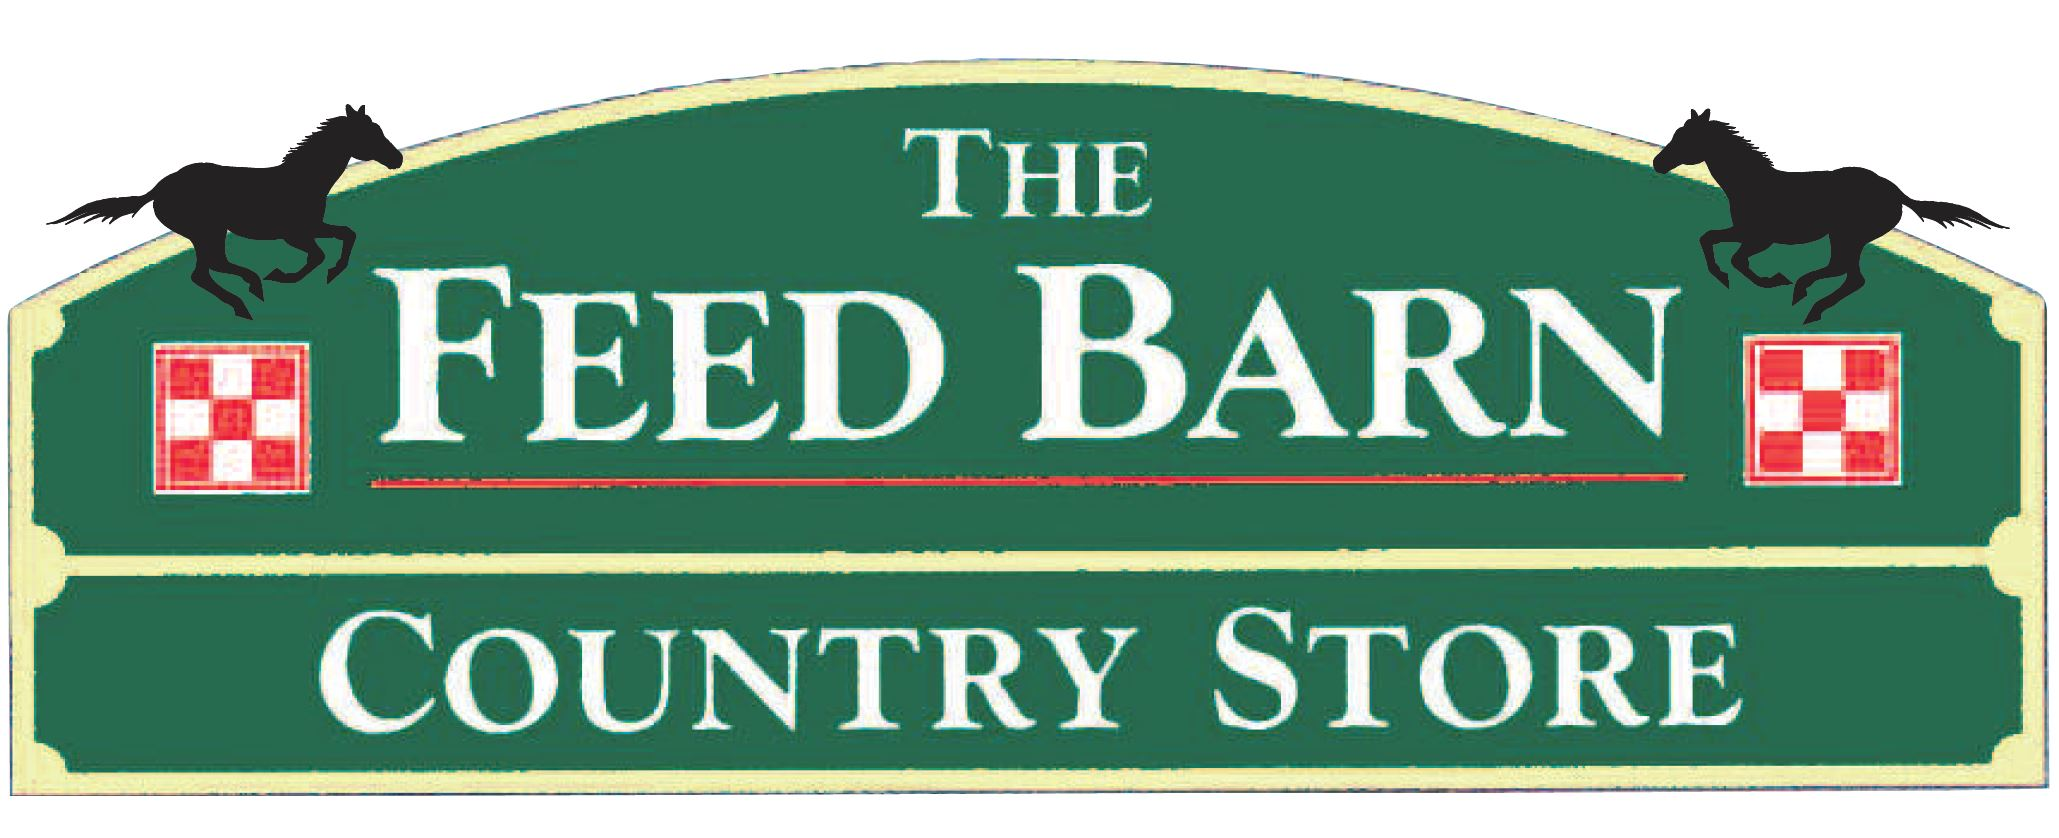 Feed Barn Country Store